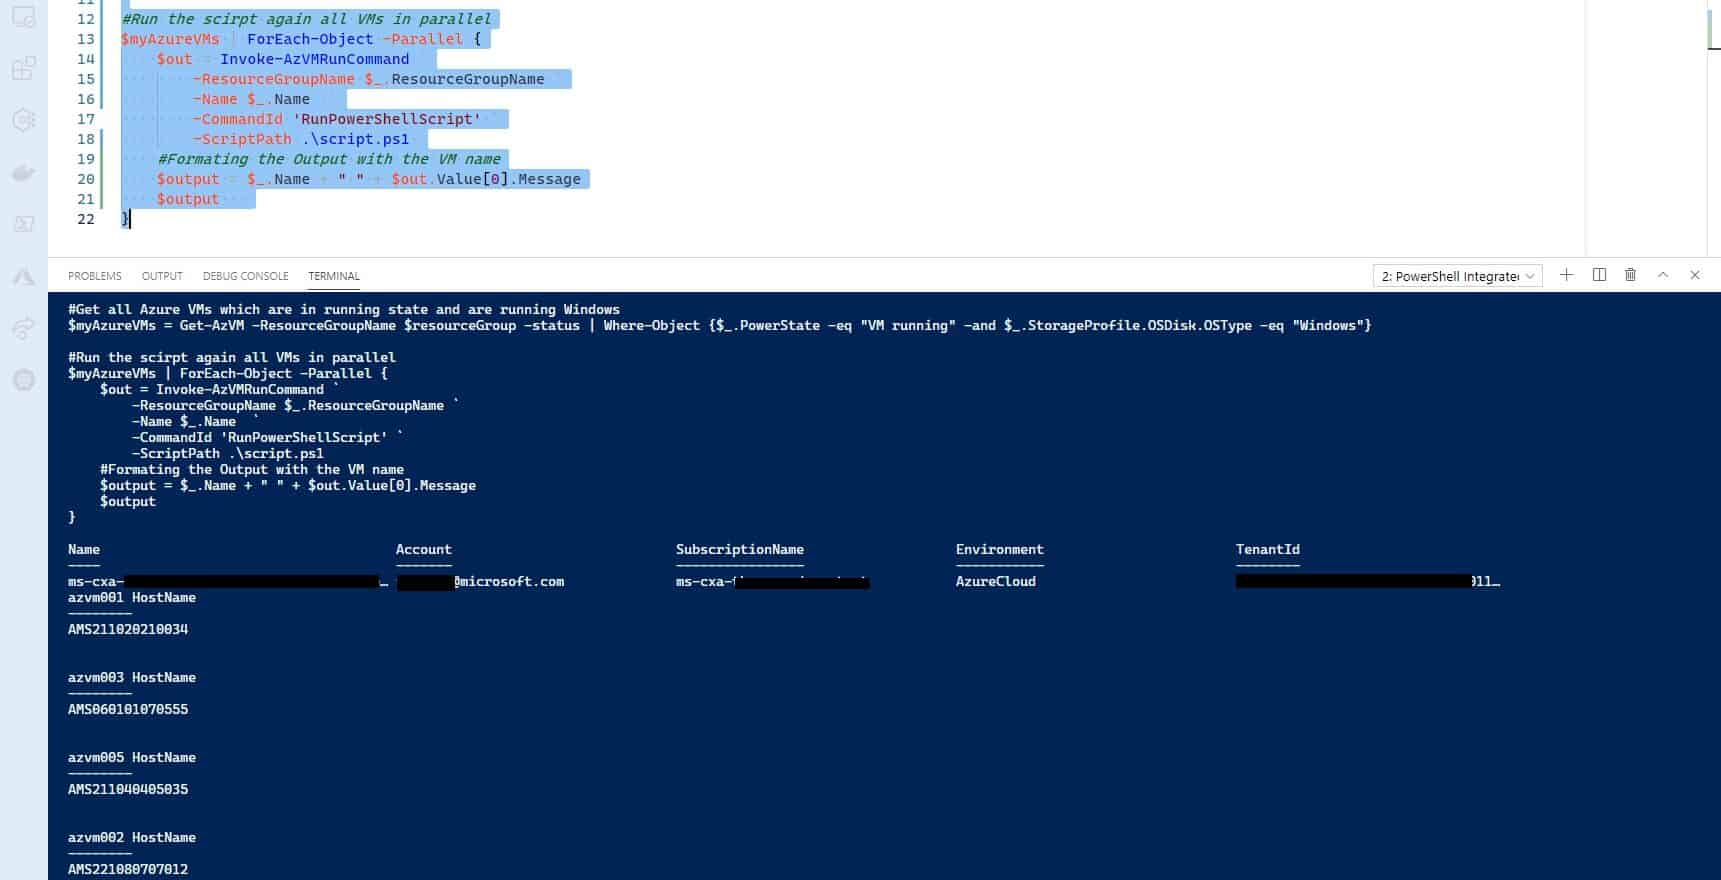 How to run PowerShell scripts against multiple Azure VMs in parallel by using Run Command